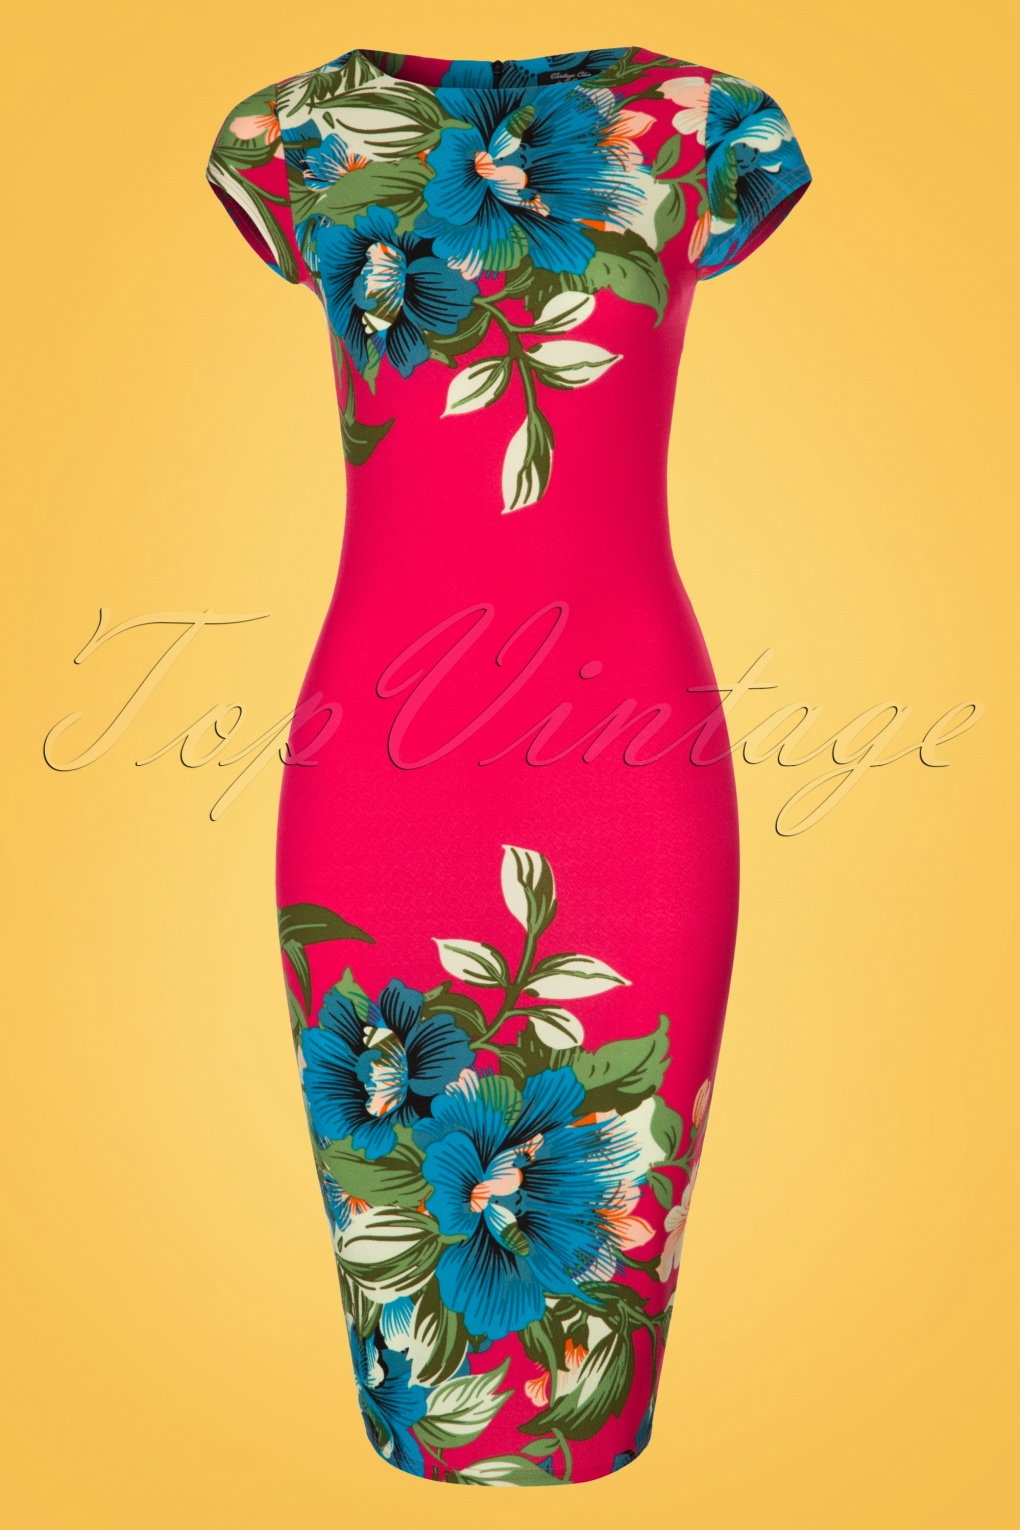 1940s Pinup Dresses for Sale 60s Aloha Tropical Garden Short Sleeves Pencil Dress in Hot Pink £10.93 AT vintagedancer.com